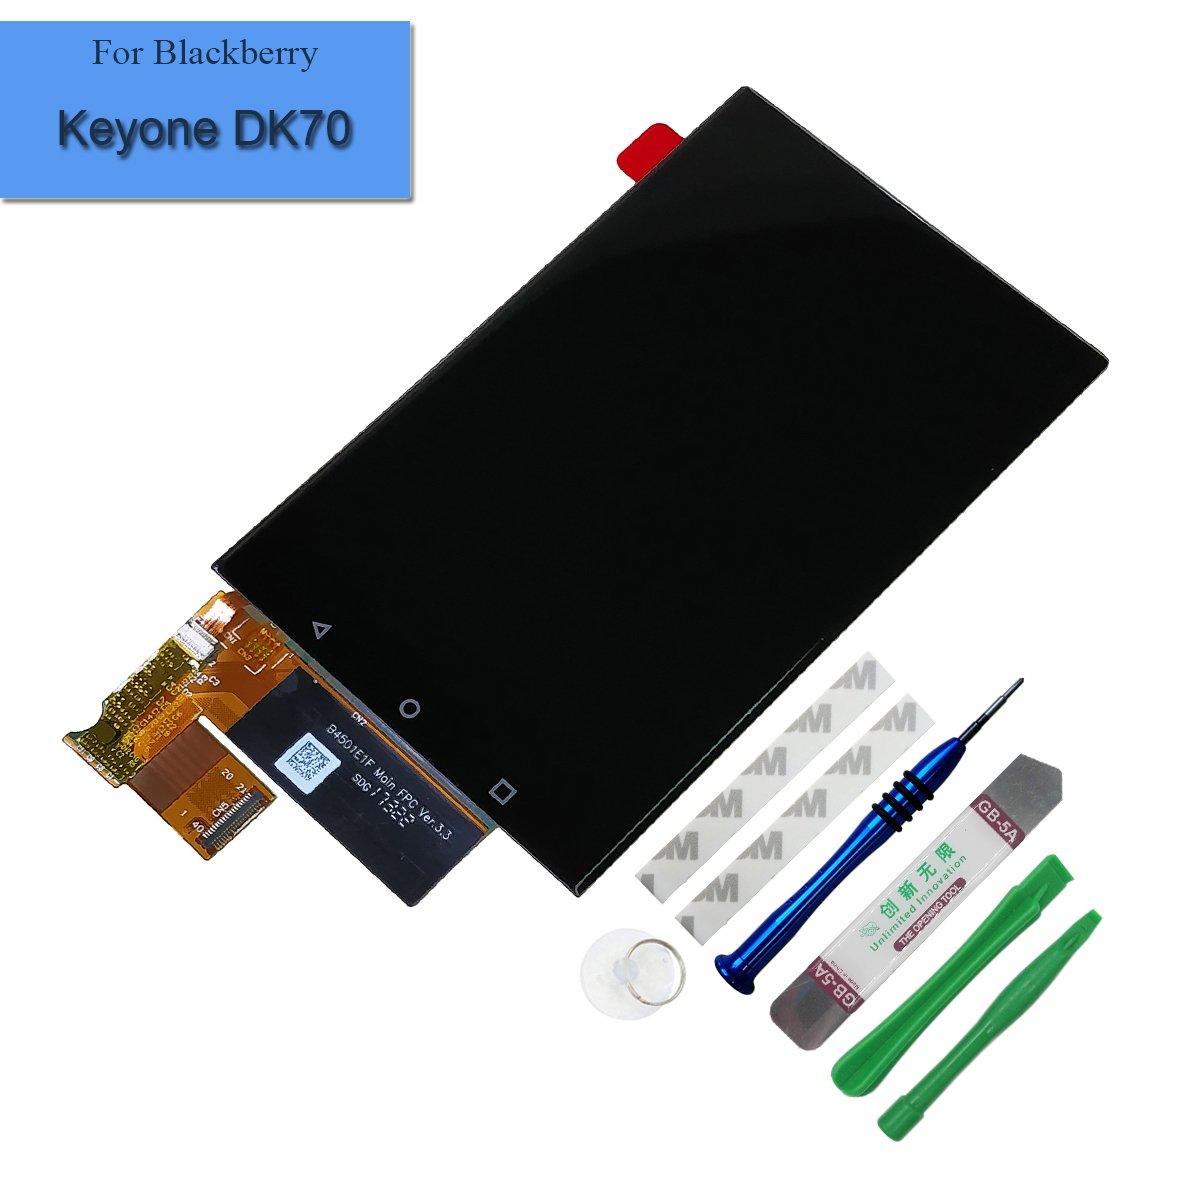 for BlackBerry Keyone DK70 DTEK70 BBB100-1 BBB100-2 BBB100-3 BBB100-4 BBB100-6 Assembly LCD Display Touch Screen Digitizer Replacement with Tools